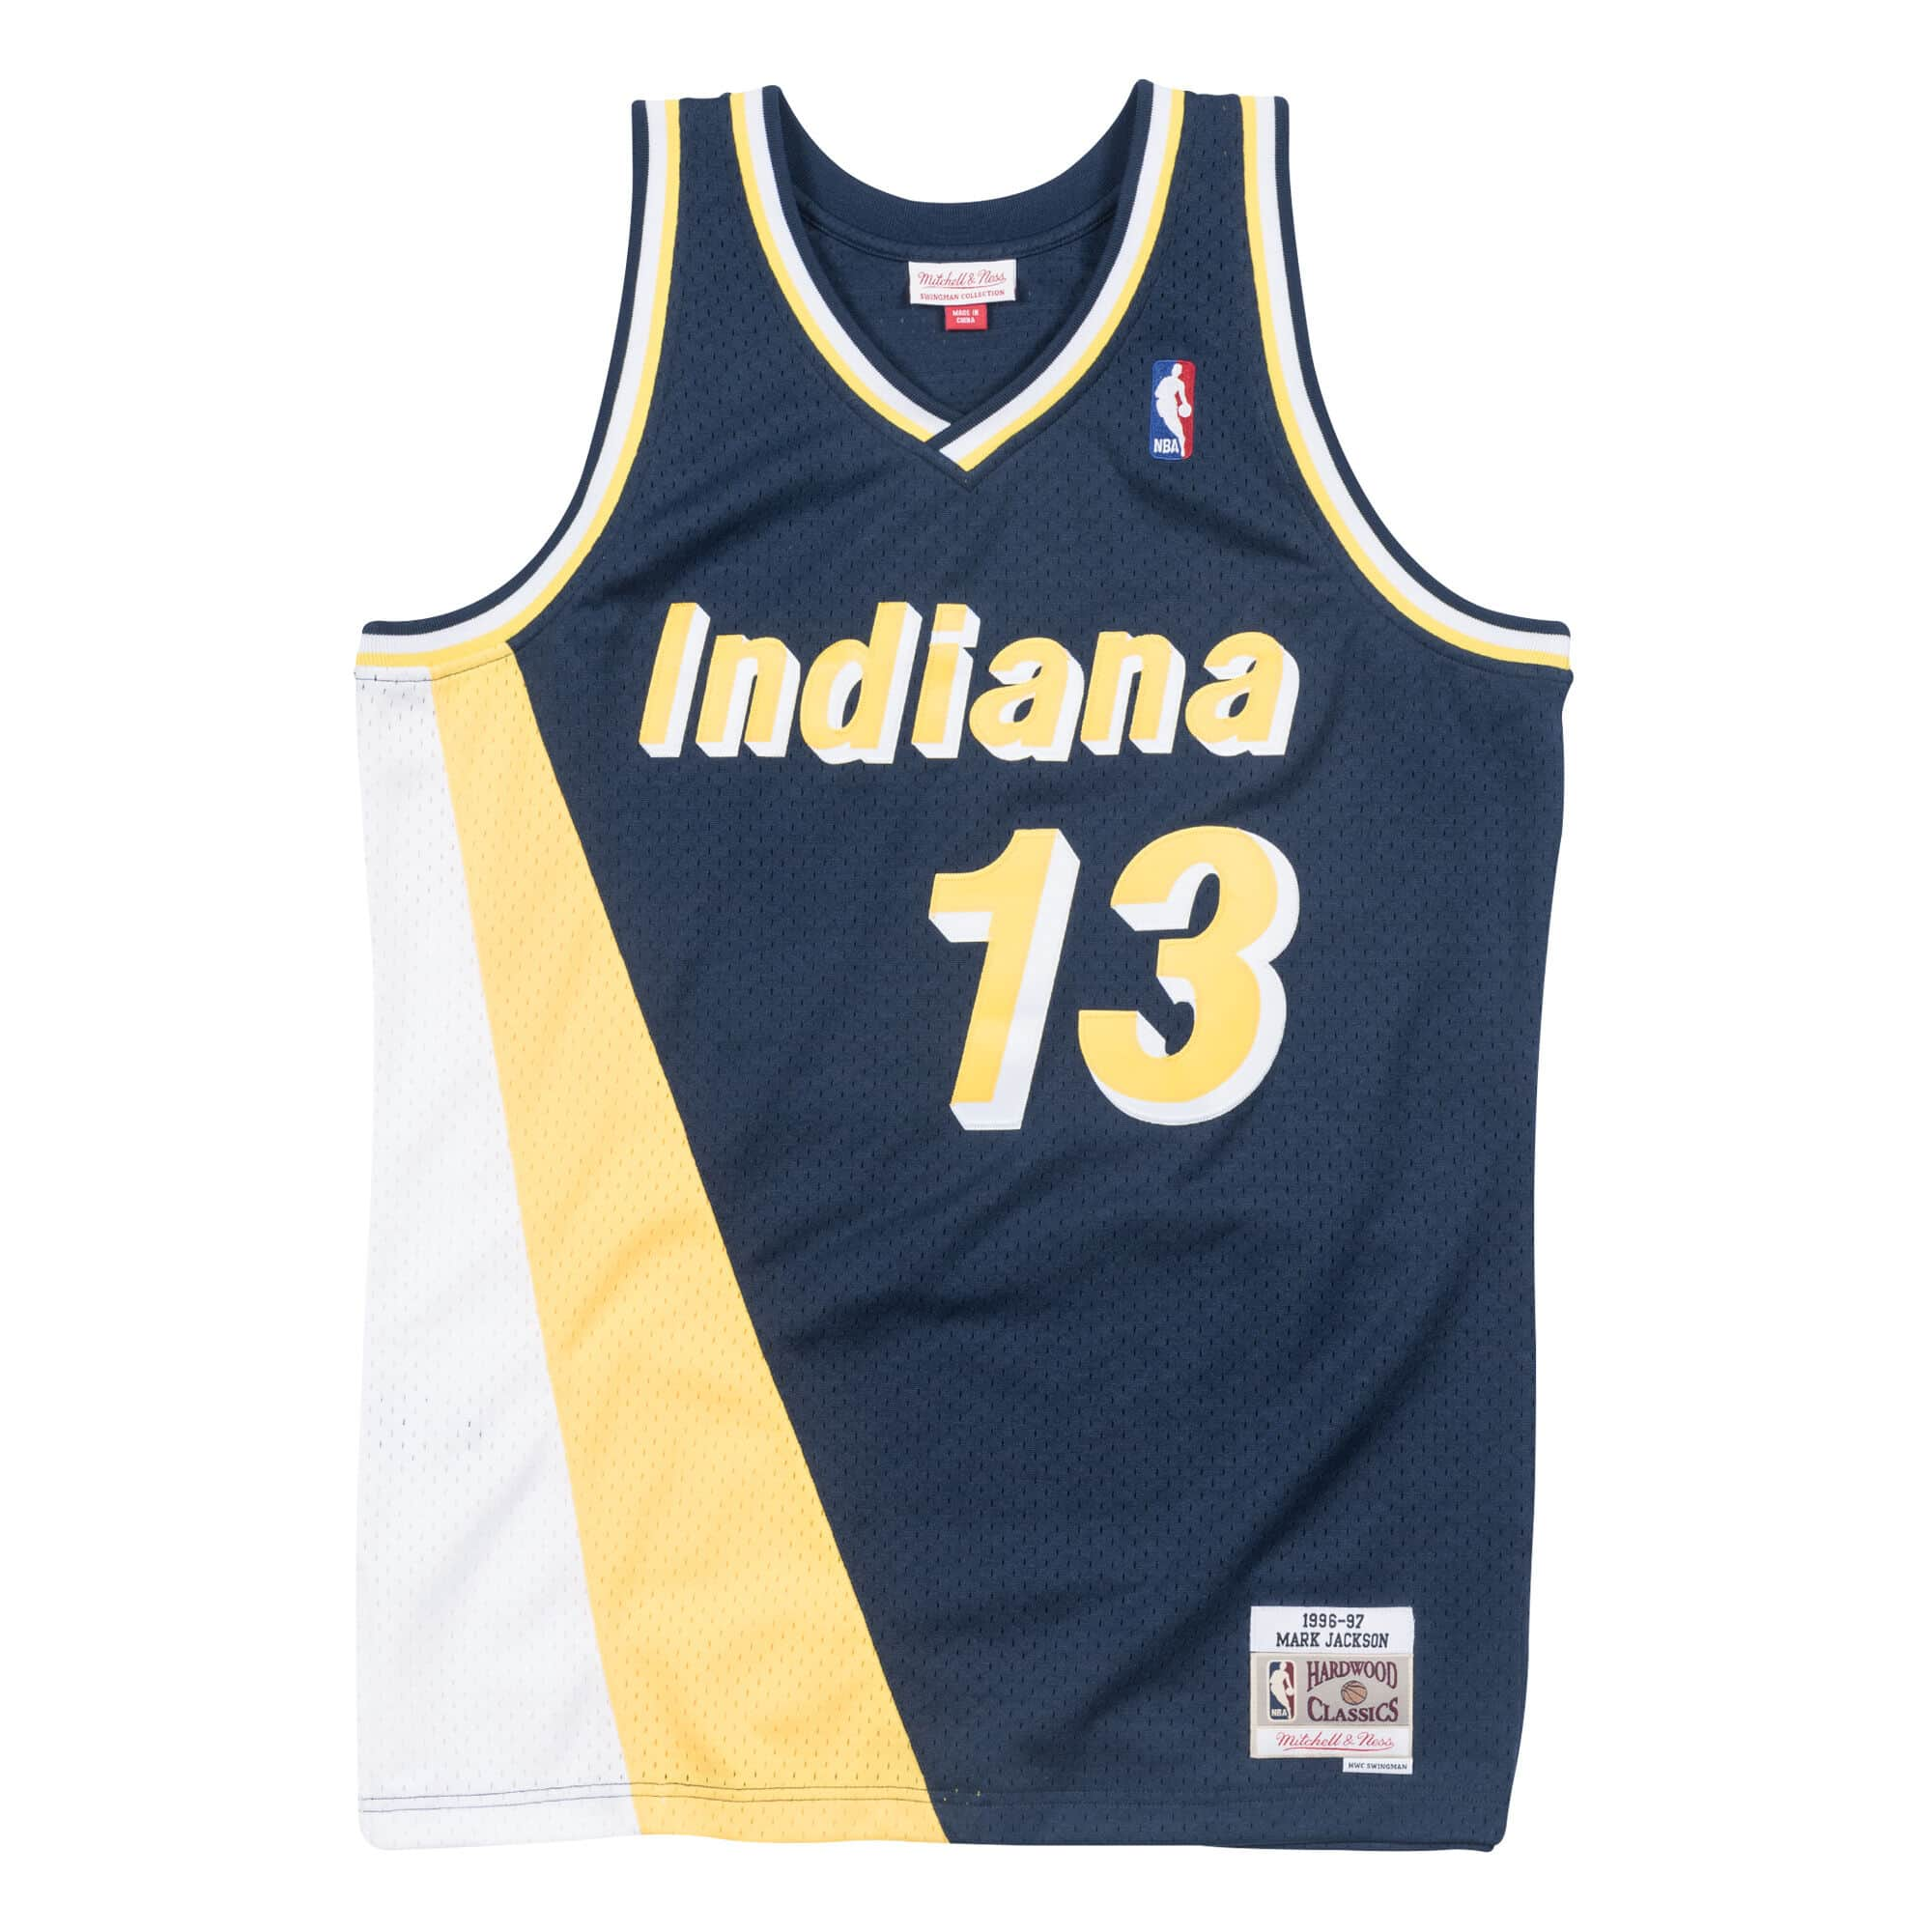 Mark Jackson 1996-97 Indiana Pacers Road Swingman Jersey